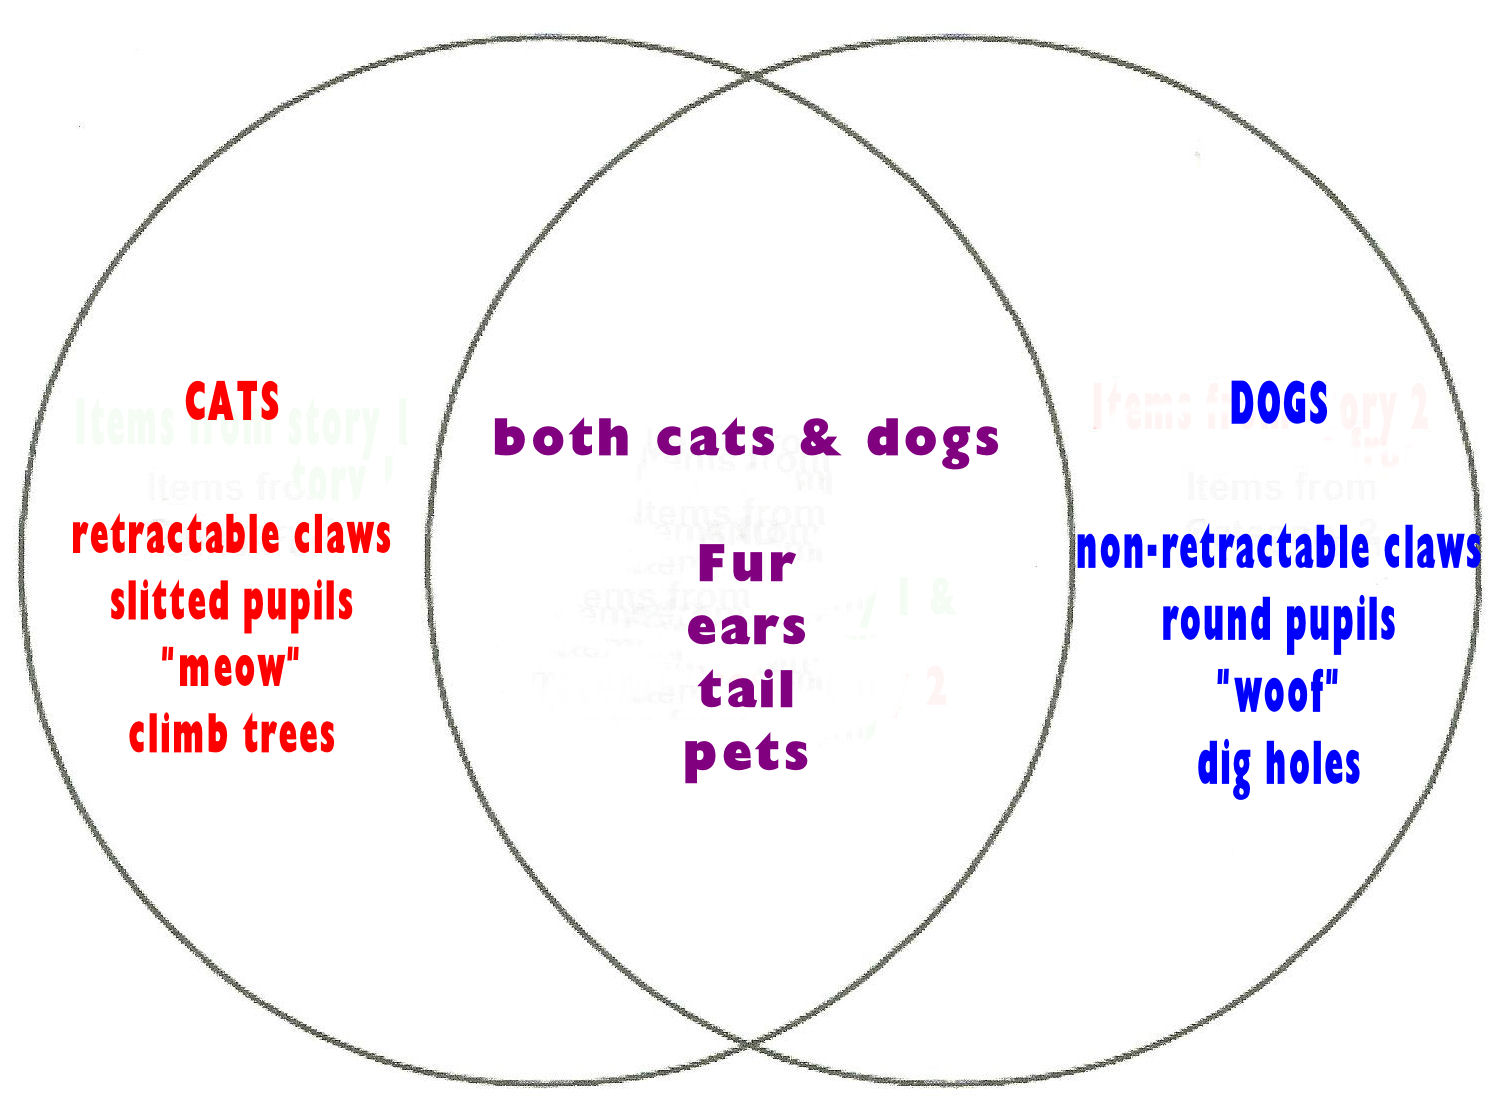 compare dogs and cats essay